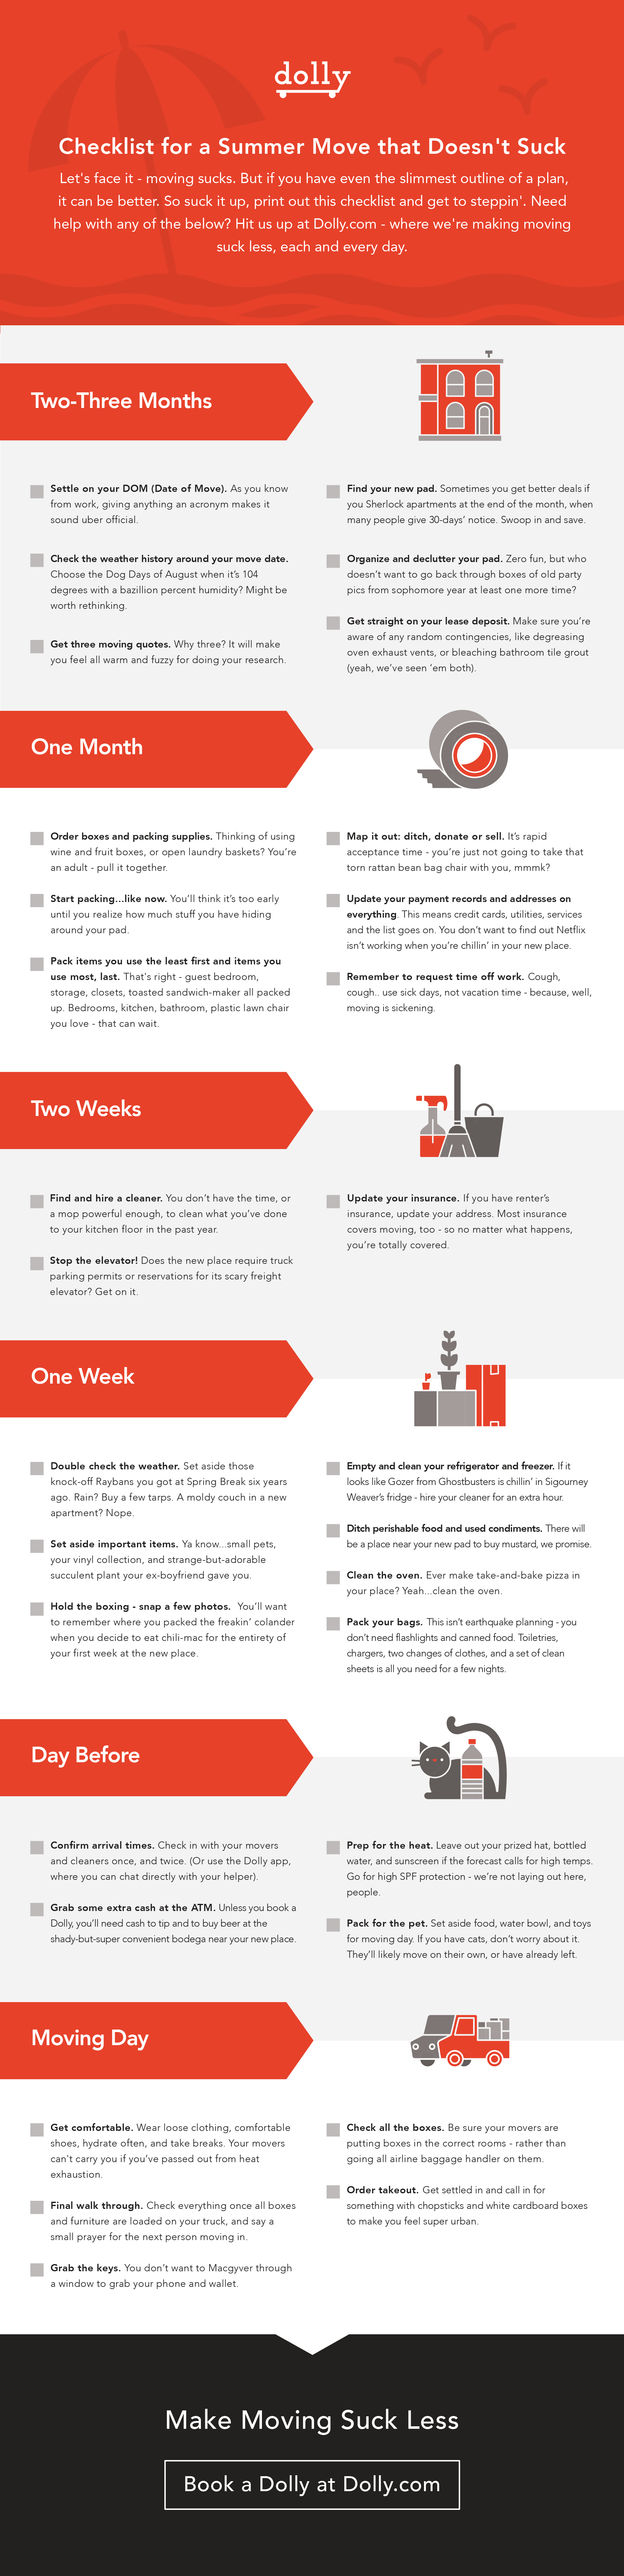 Dolly_Infographic_SummerMovingChecklist_PRODUCTION.png